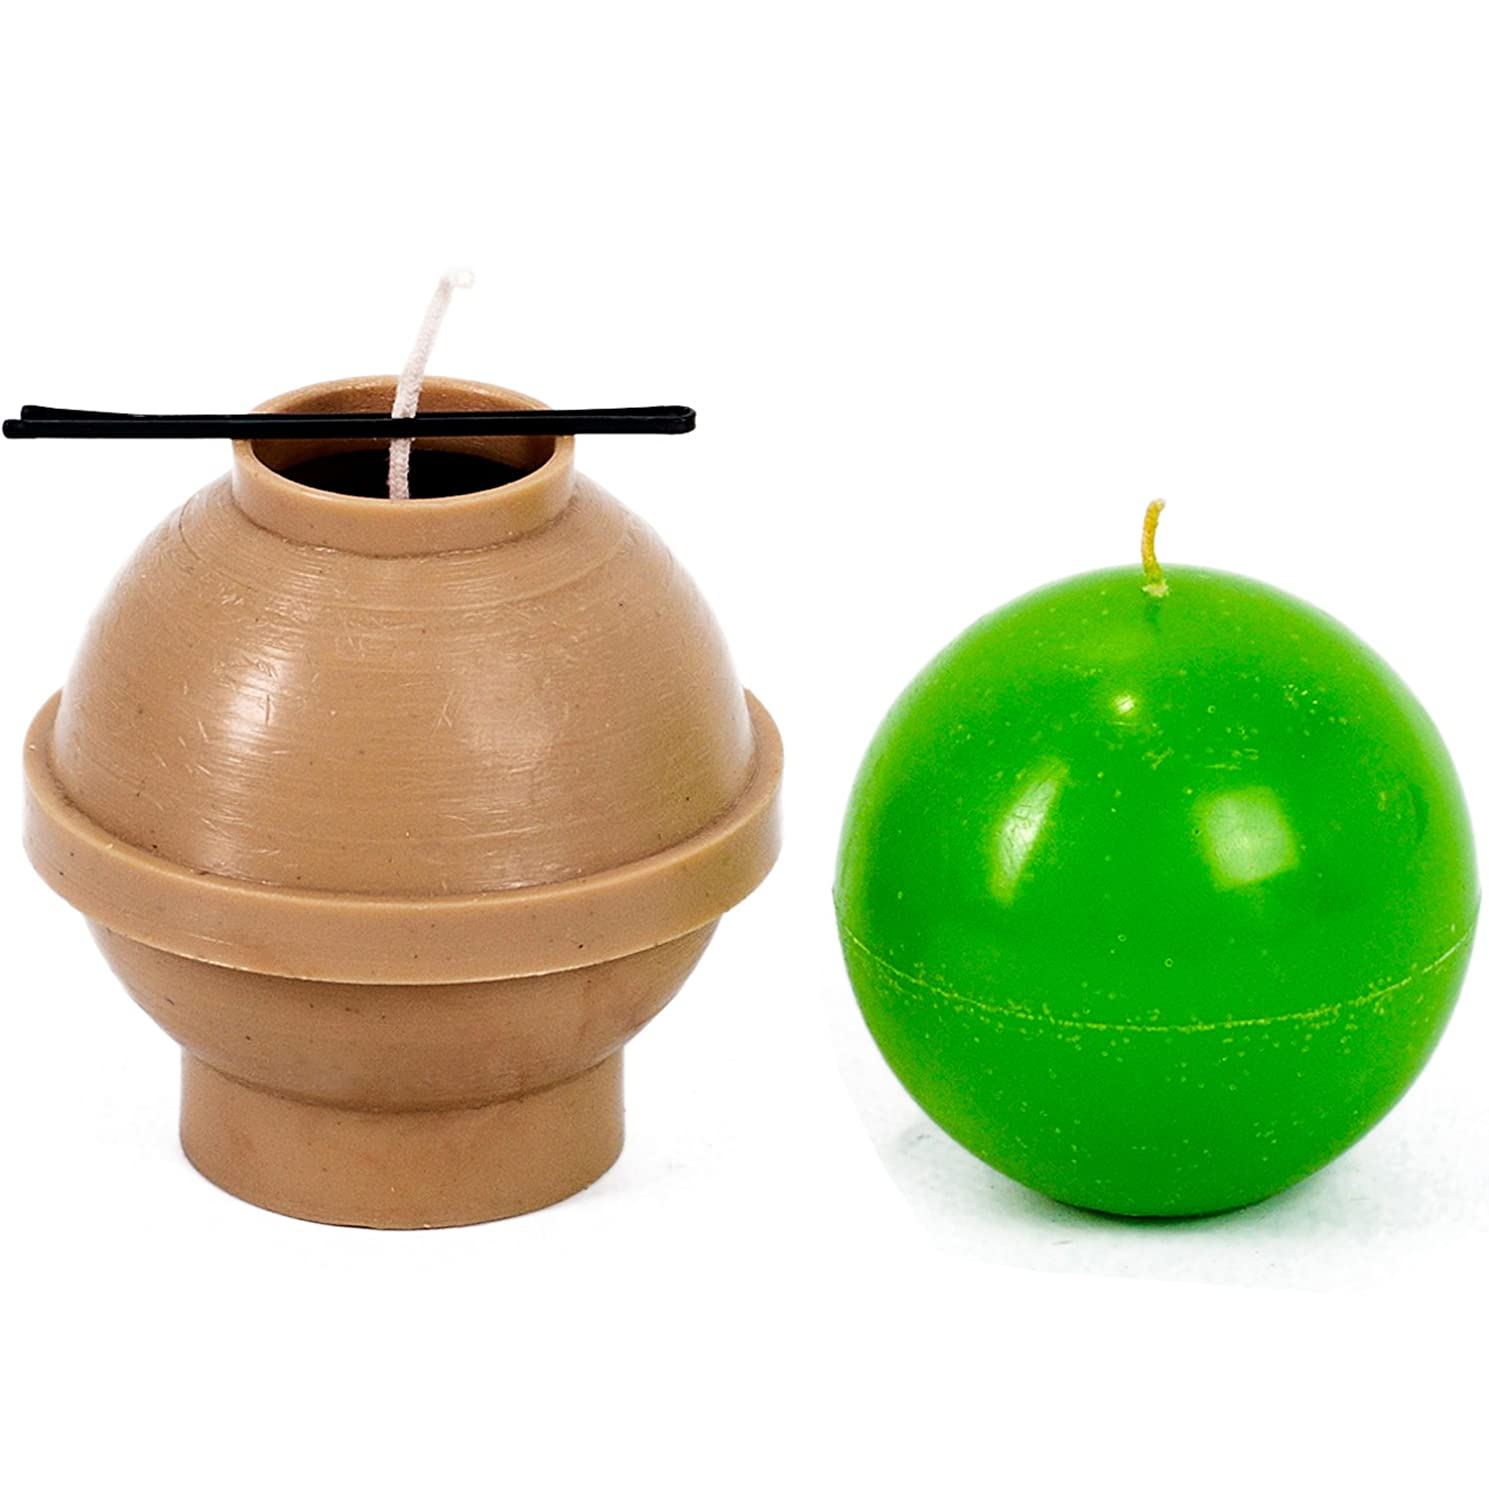 Ball Diameter: 3.1 in - Sphere - 30 ft. of Wick Included as a Gift - Plastic Candle molds for Making Candles